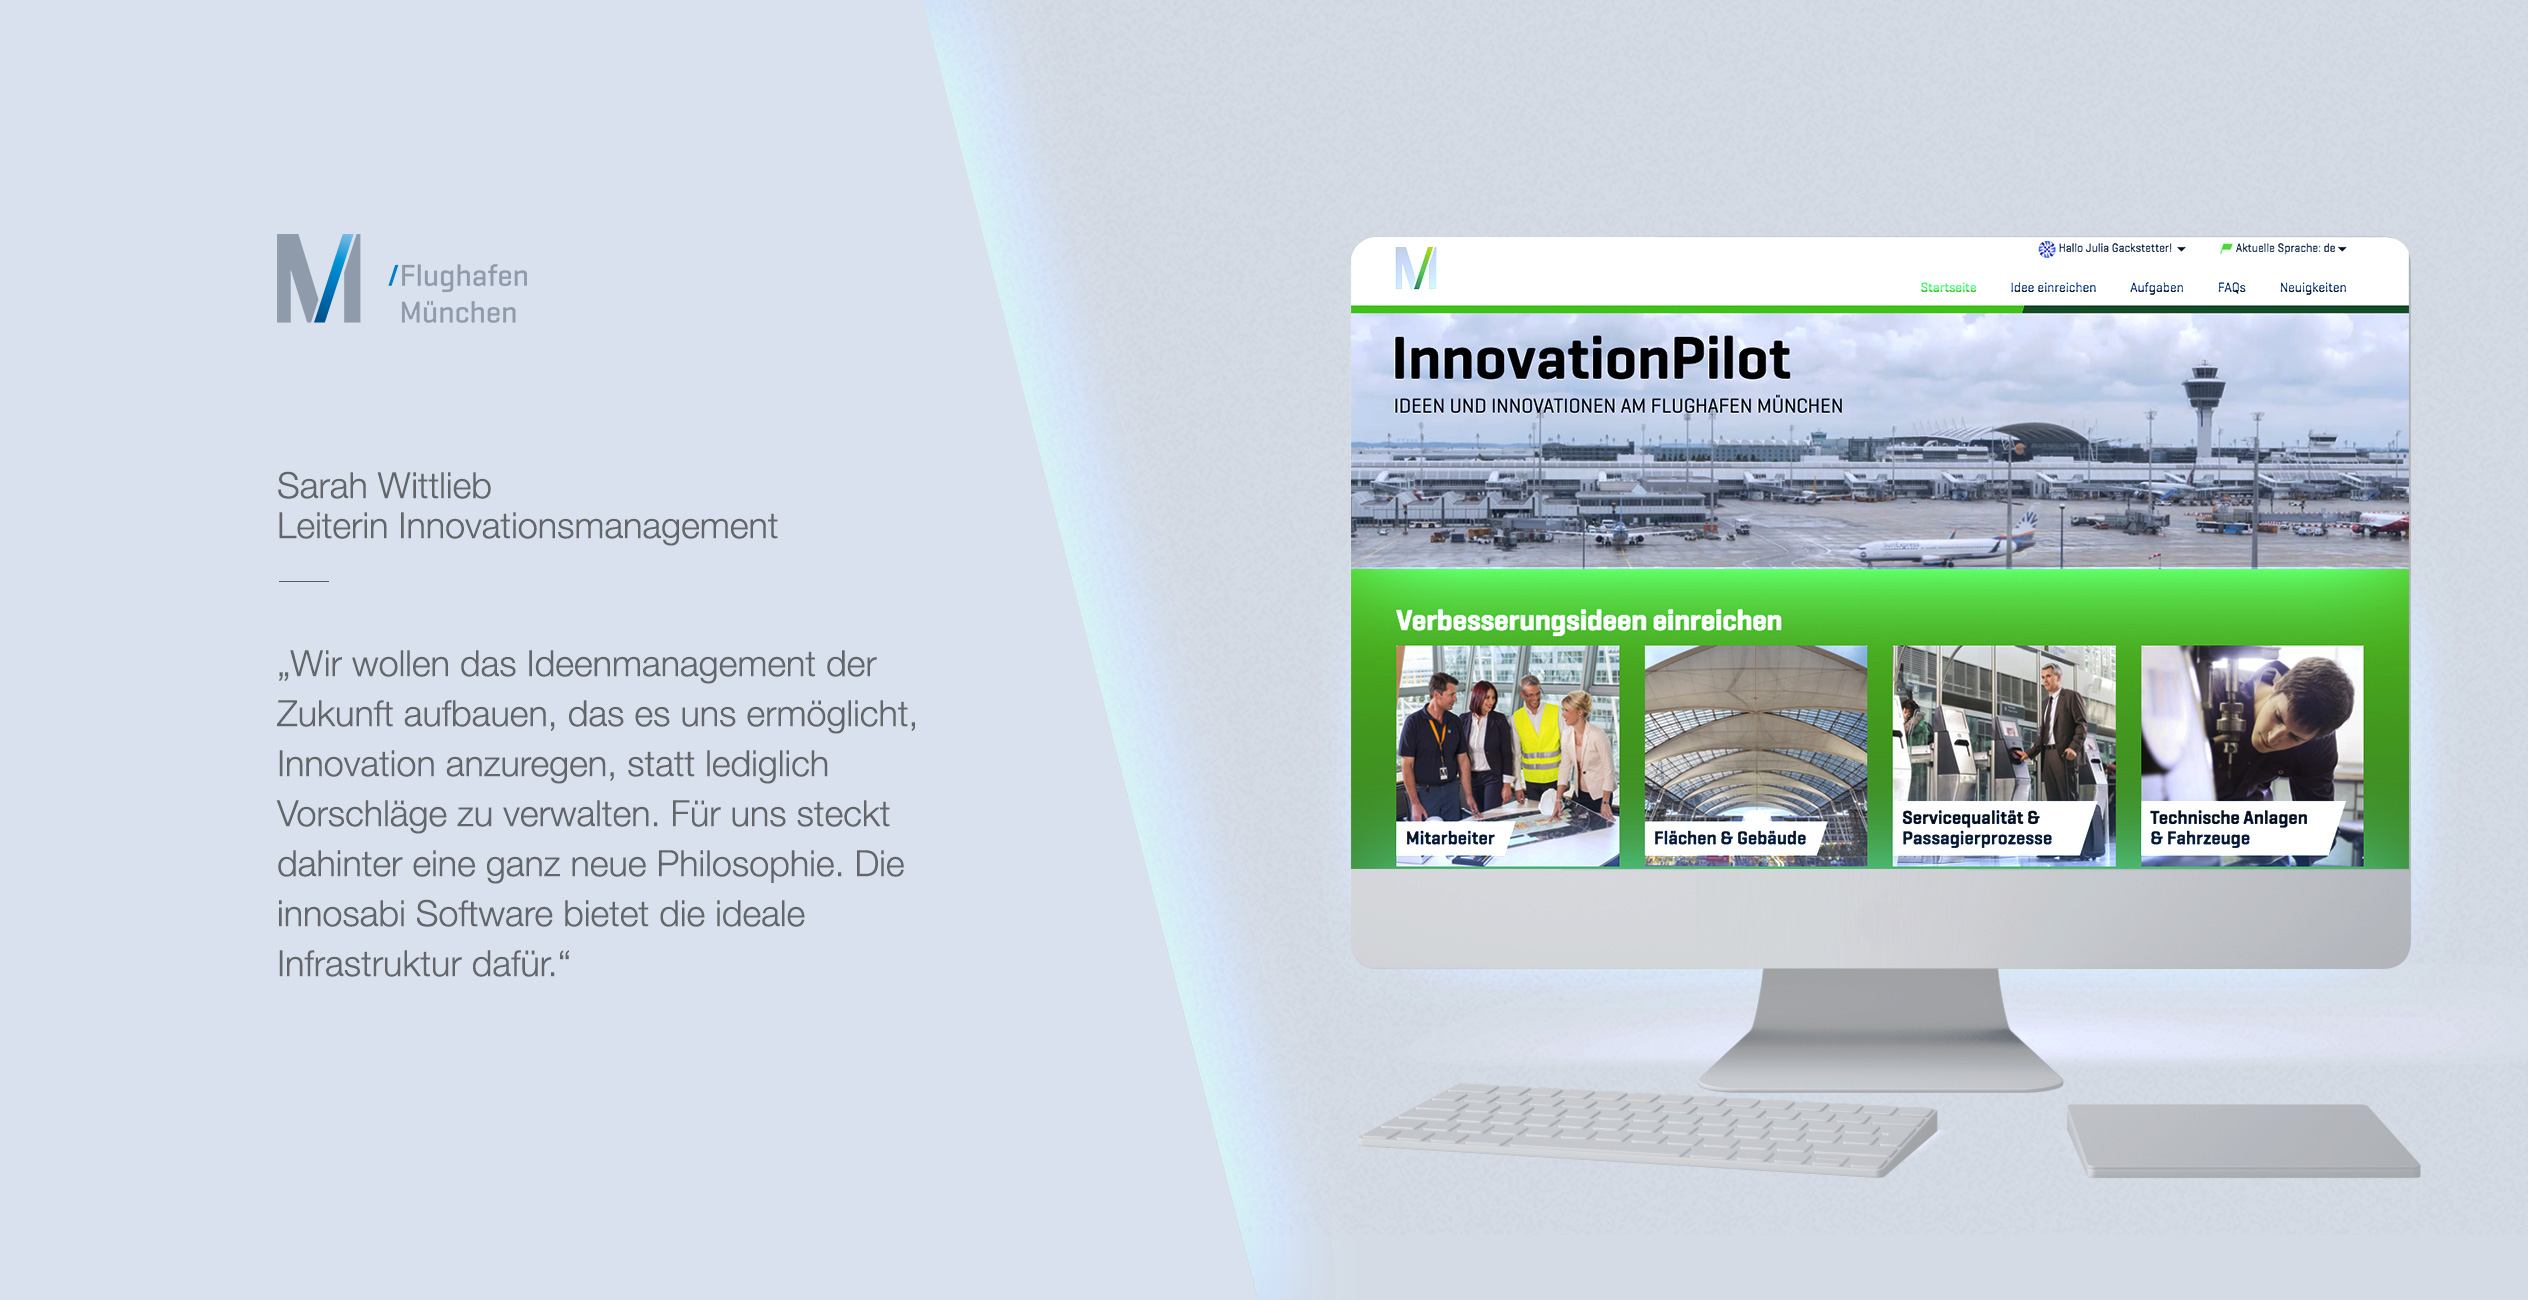 Munich Airport uses innosabi spark as a central, digital platform for all employee ideas. All employees can submit suggestions in a broad range of thematic clusters to improve processes or services. In addition, targeted idea challenges are used to engage specific groups of people in the collaborative generation of new ideas for the future of Munich Airport.